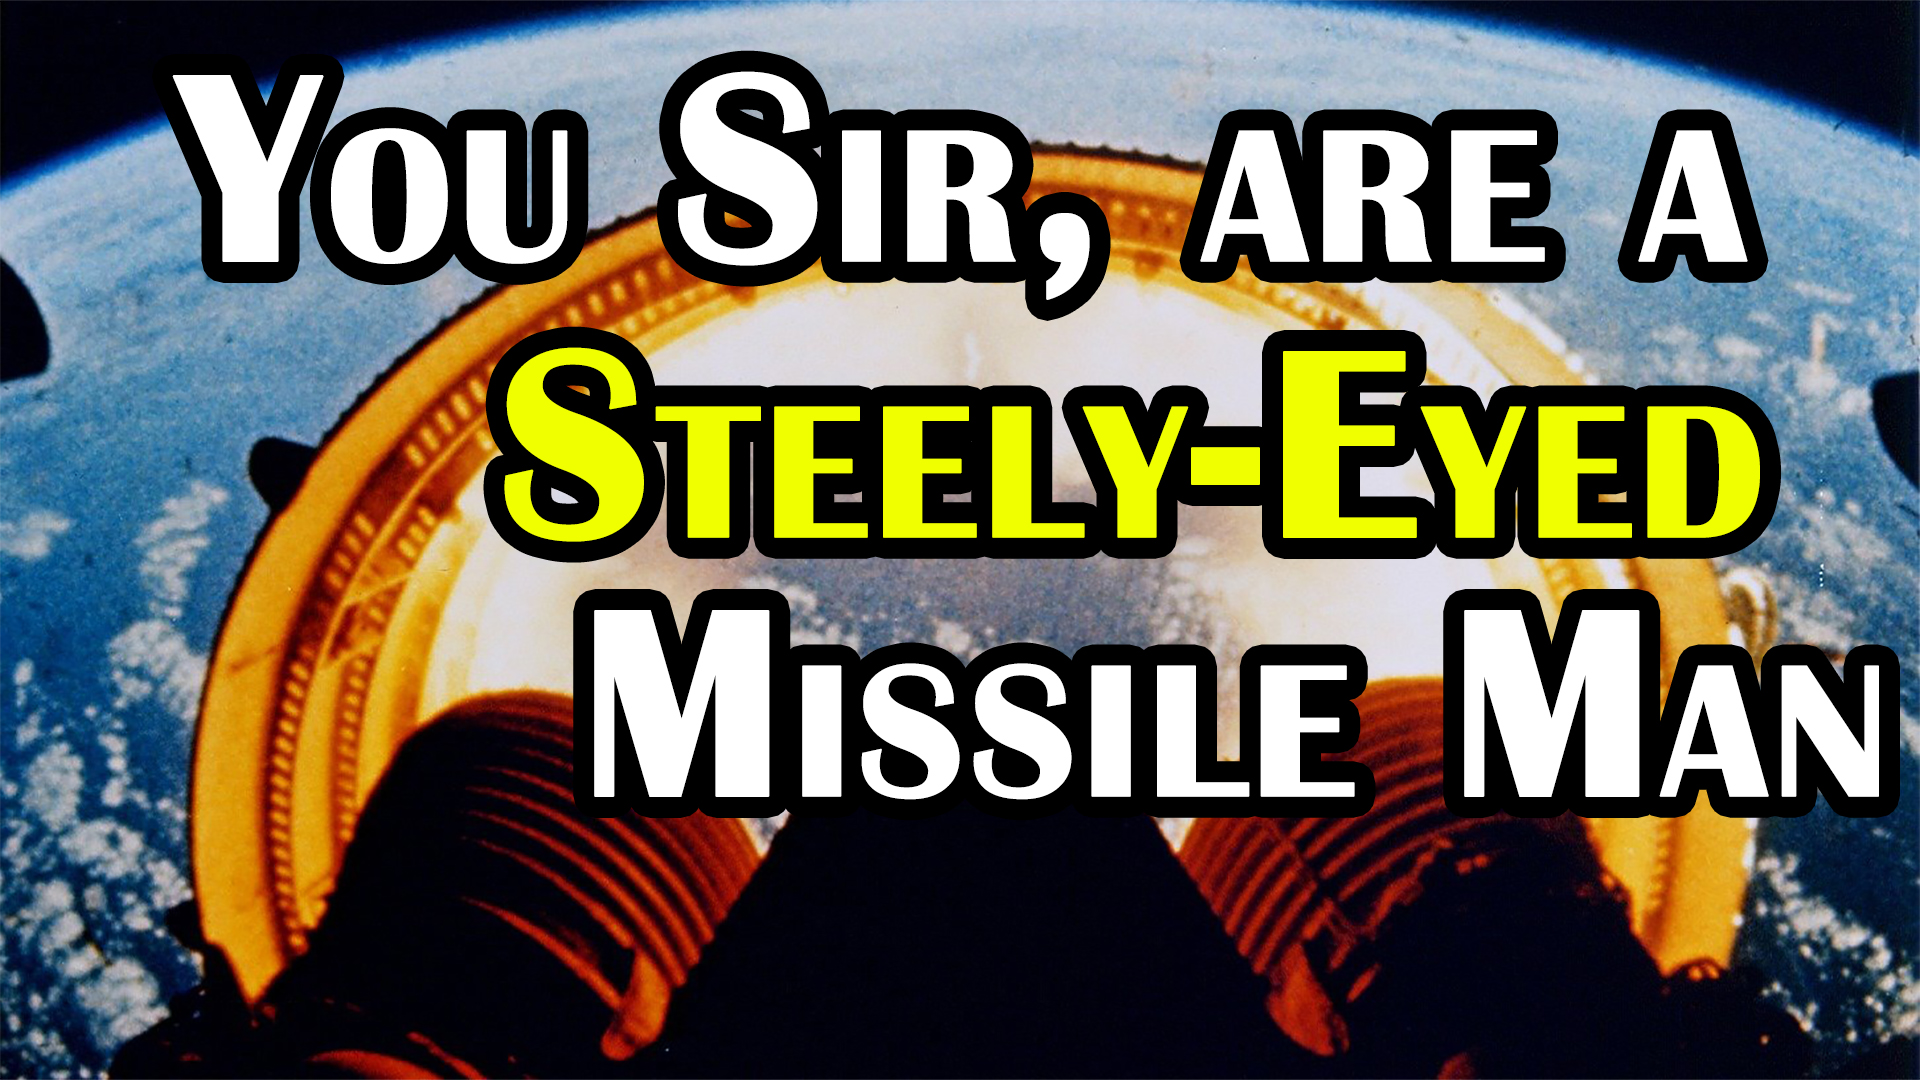 Where Did the NASA Expression Steely-Eyed Missile Man Come From?